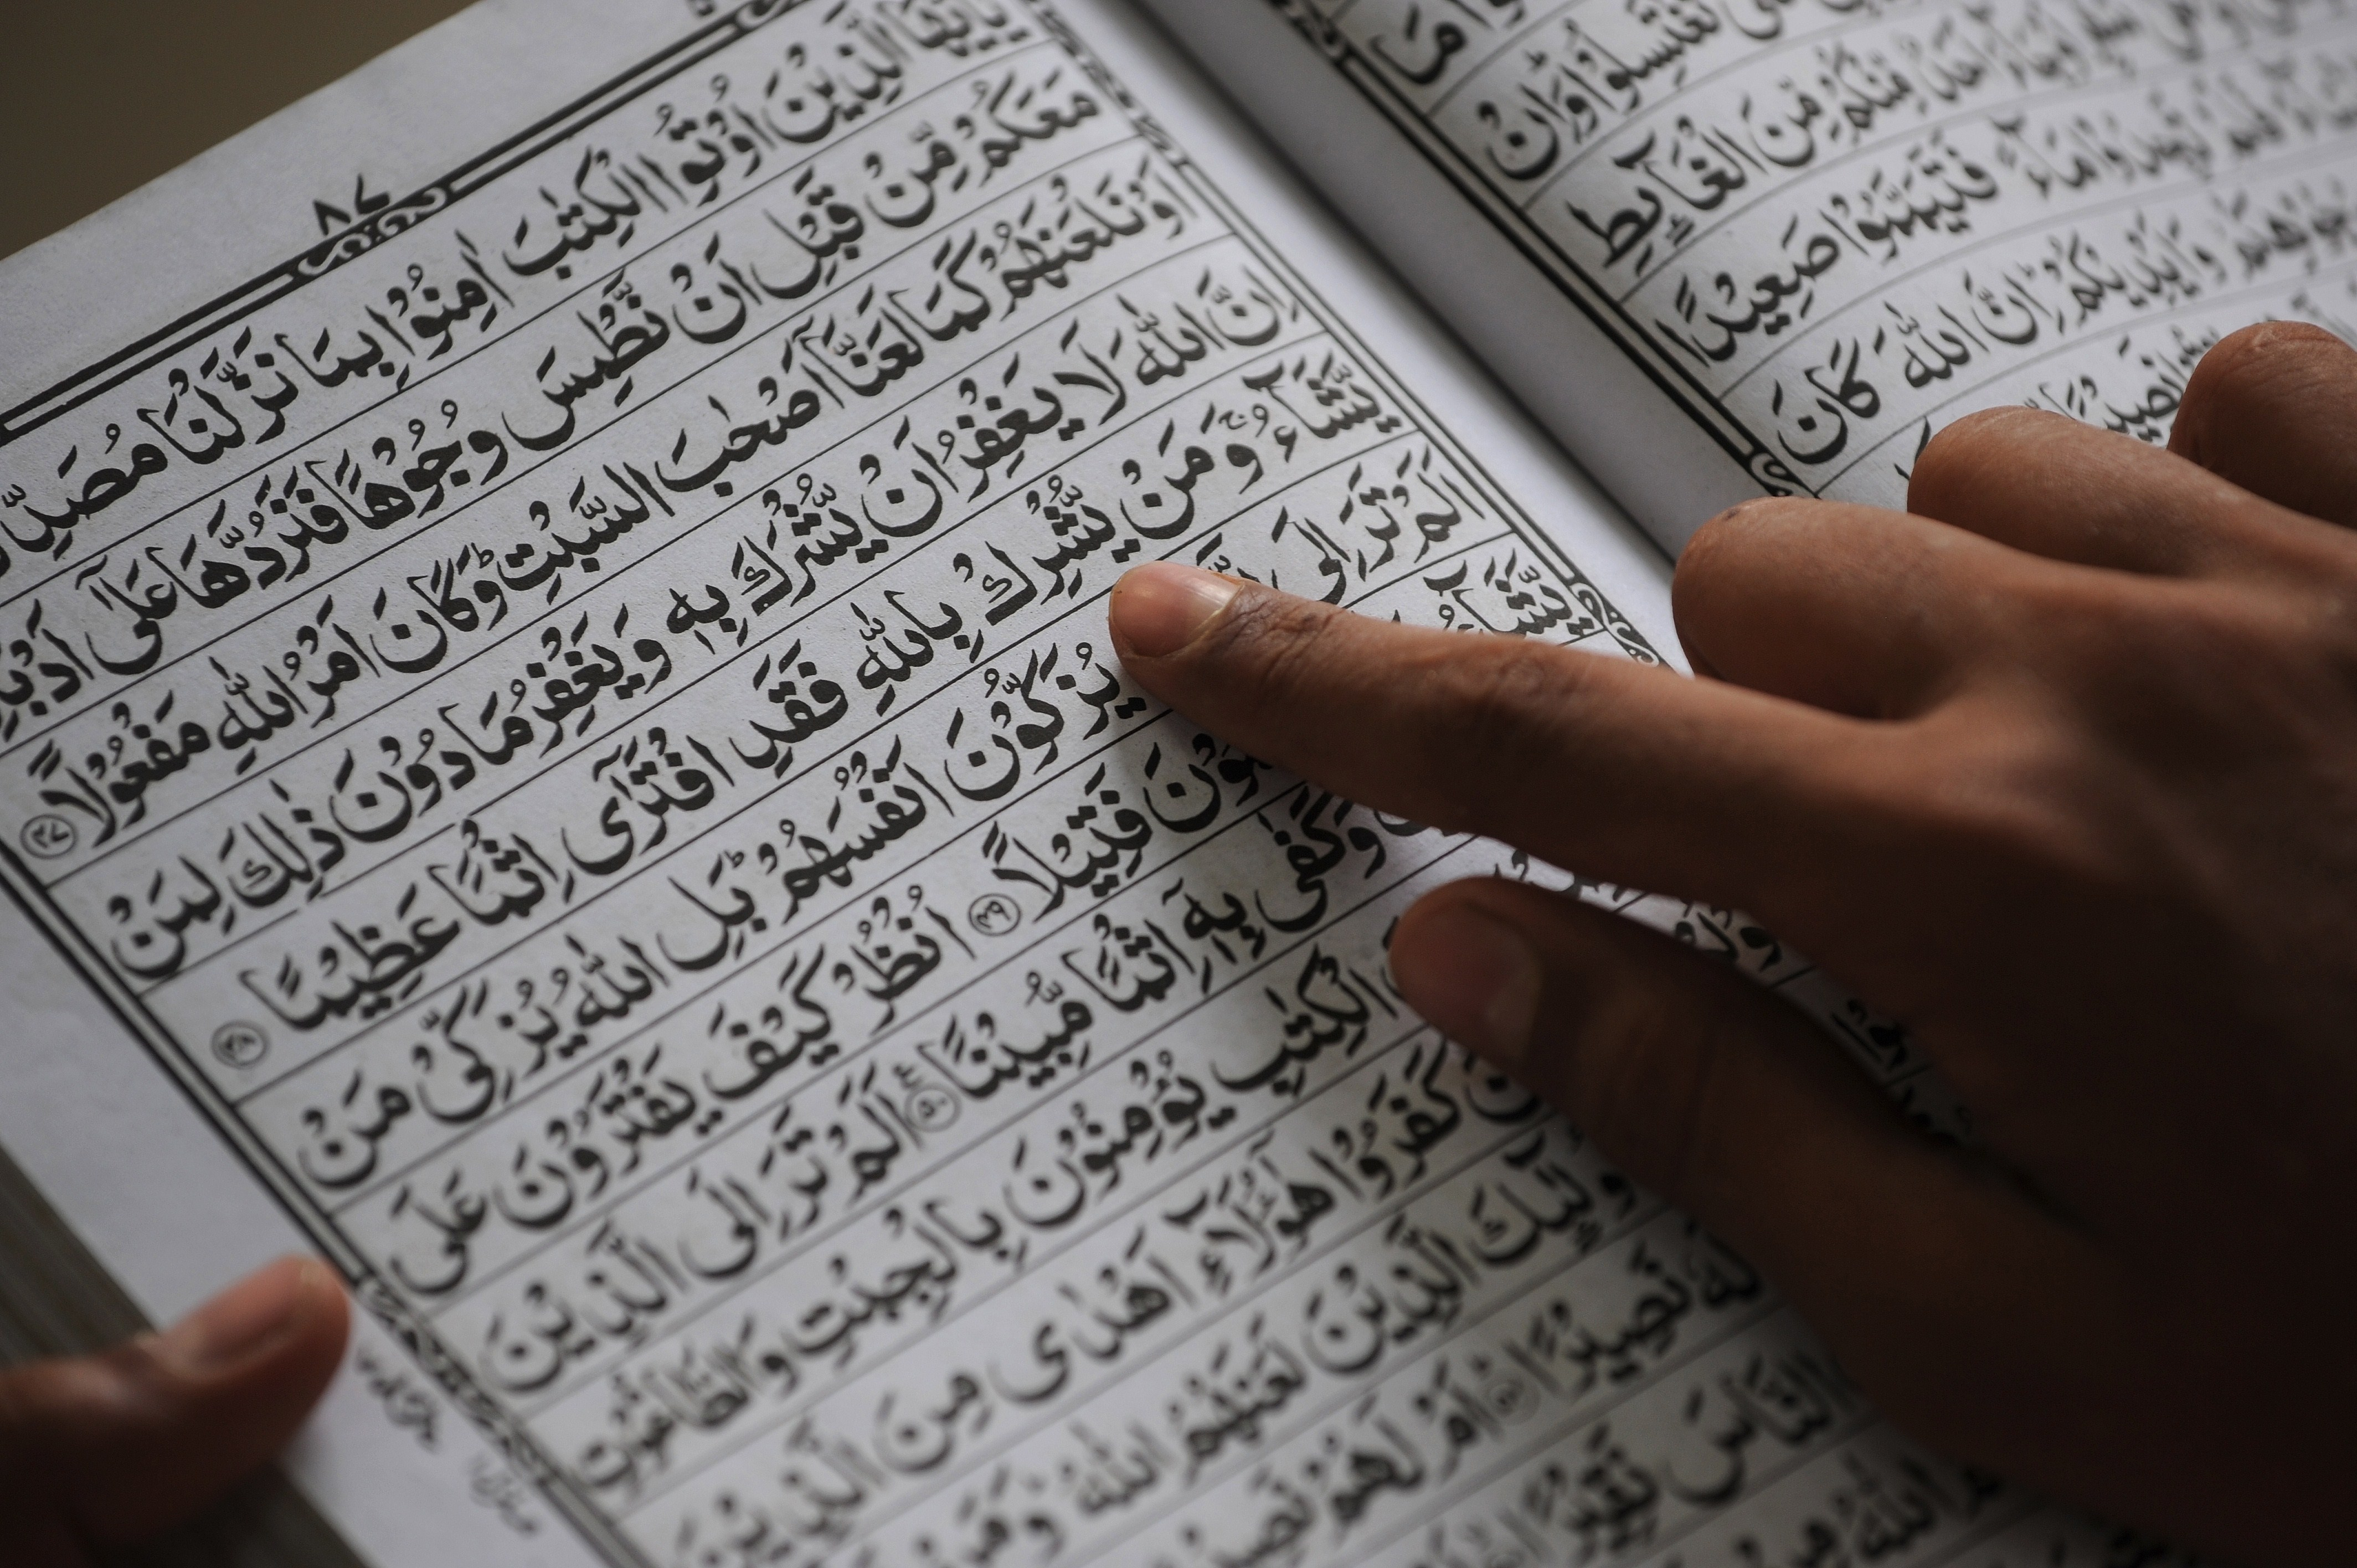 A Indian Muslim reads the Koran at a madrassa during the Islamic holy fasting month of Ramadan in Mumbai on June 30, 2014.